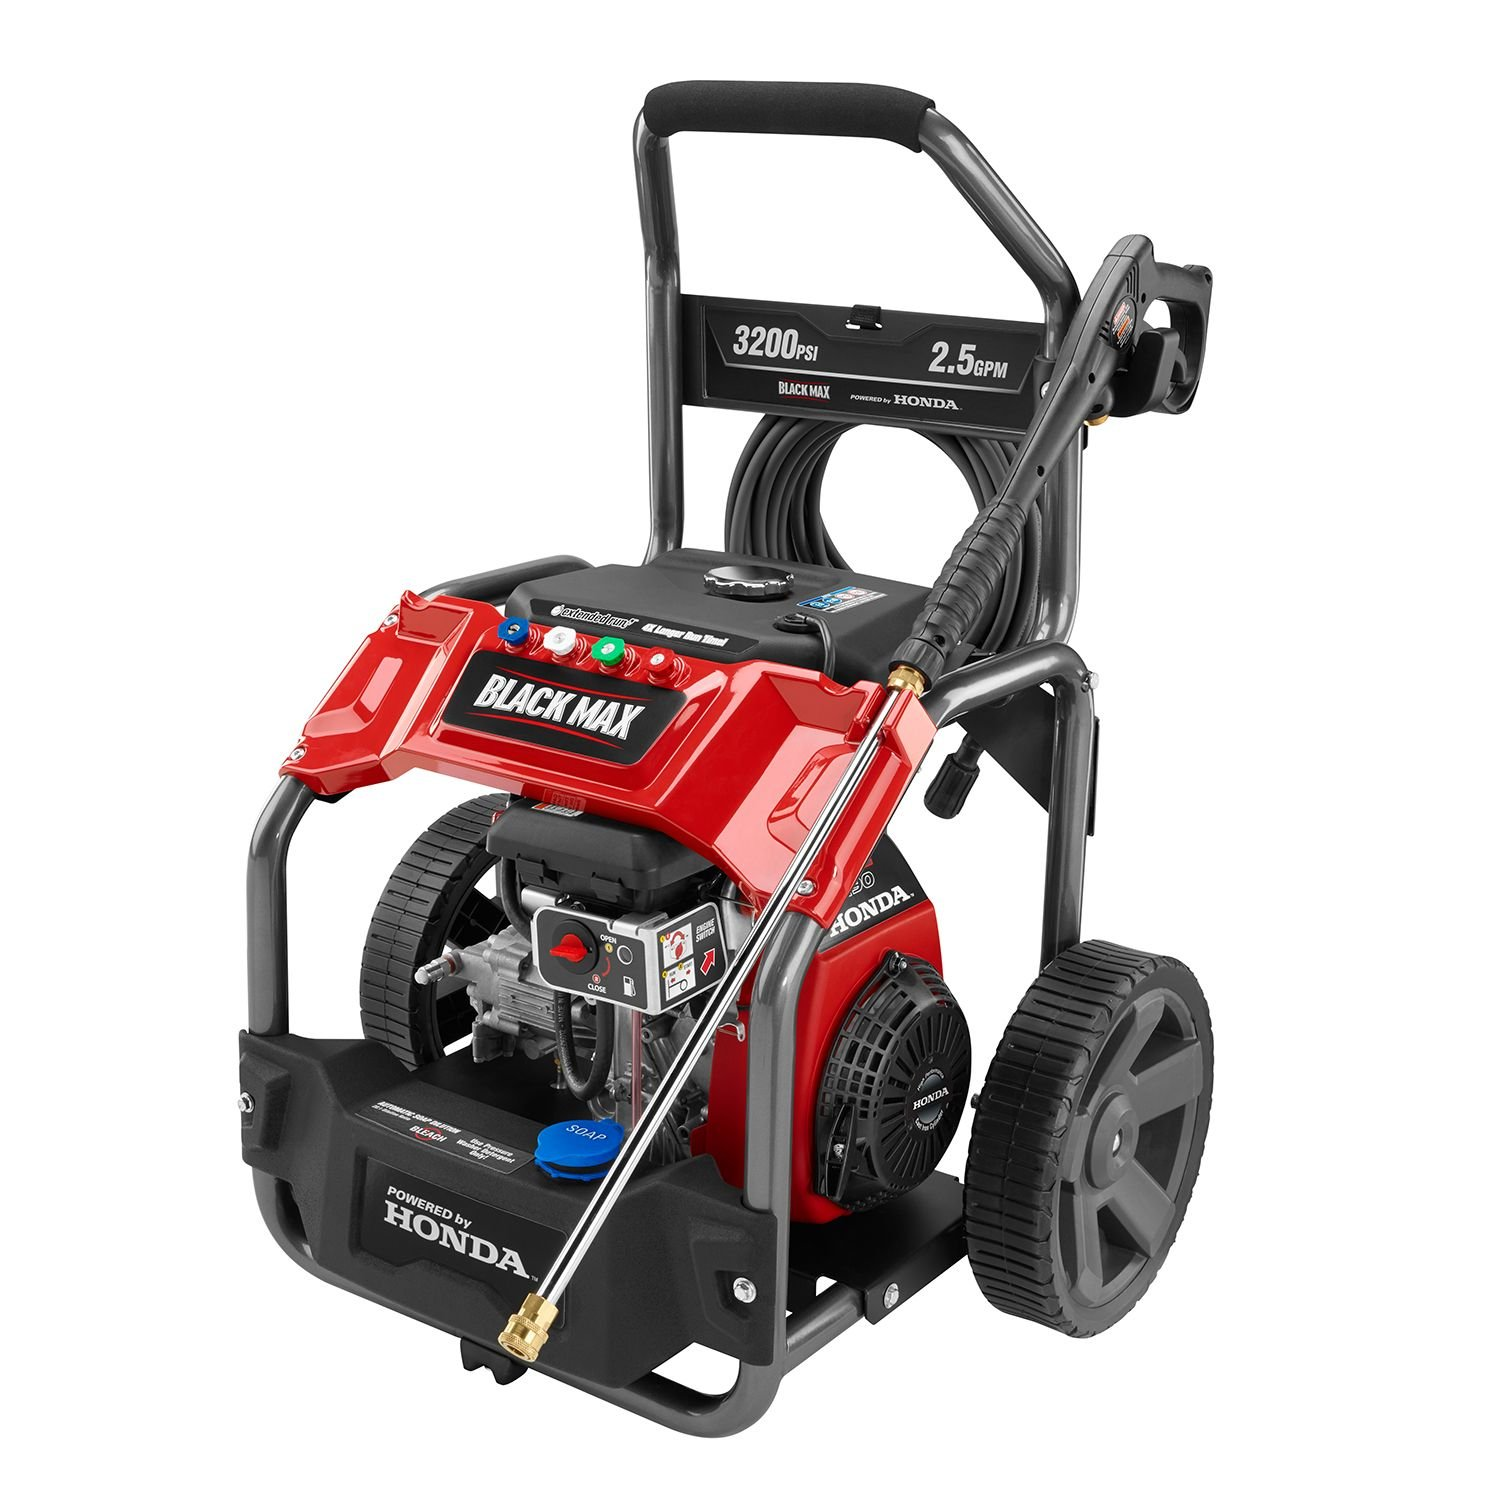 Amazon.com : Black Max 3200 PSI Extended Run Gas Pressure Washer (Powered  By Honda) : Garden U0026 Outdoor